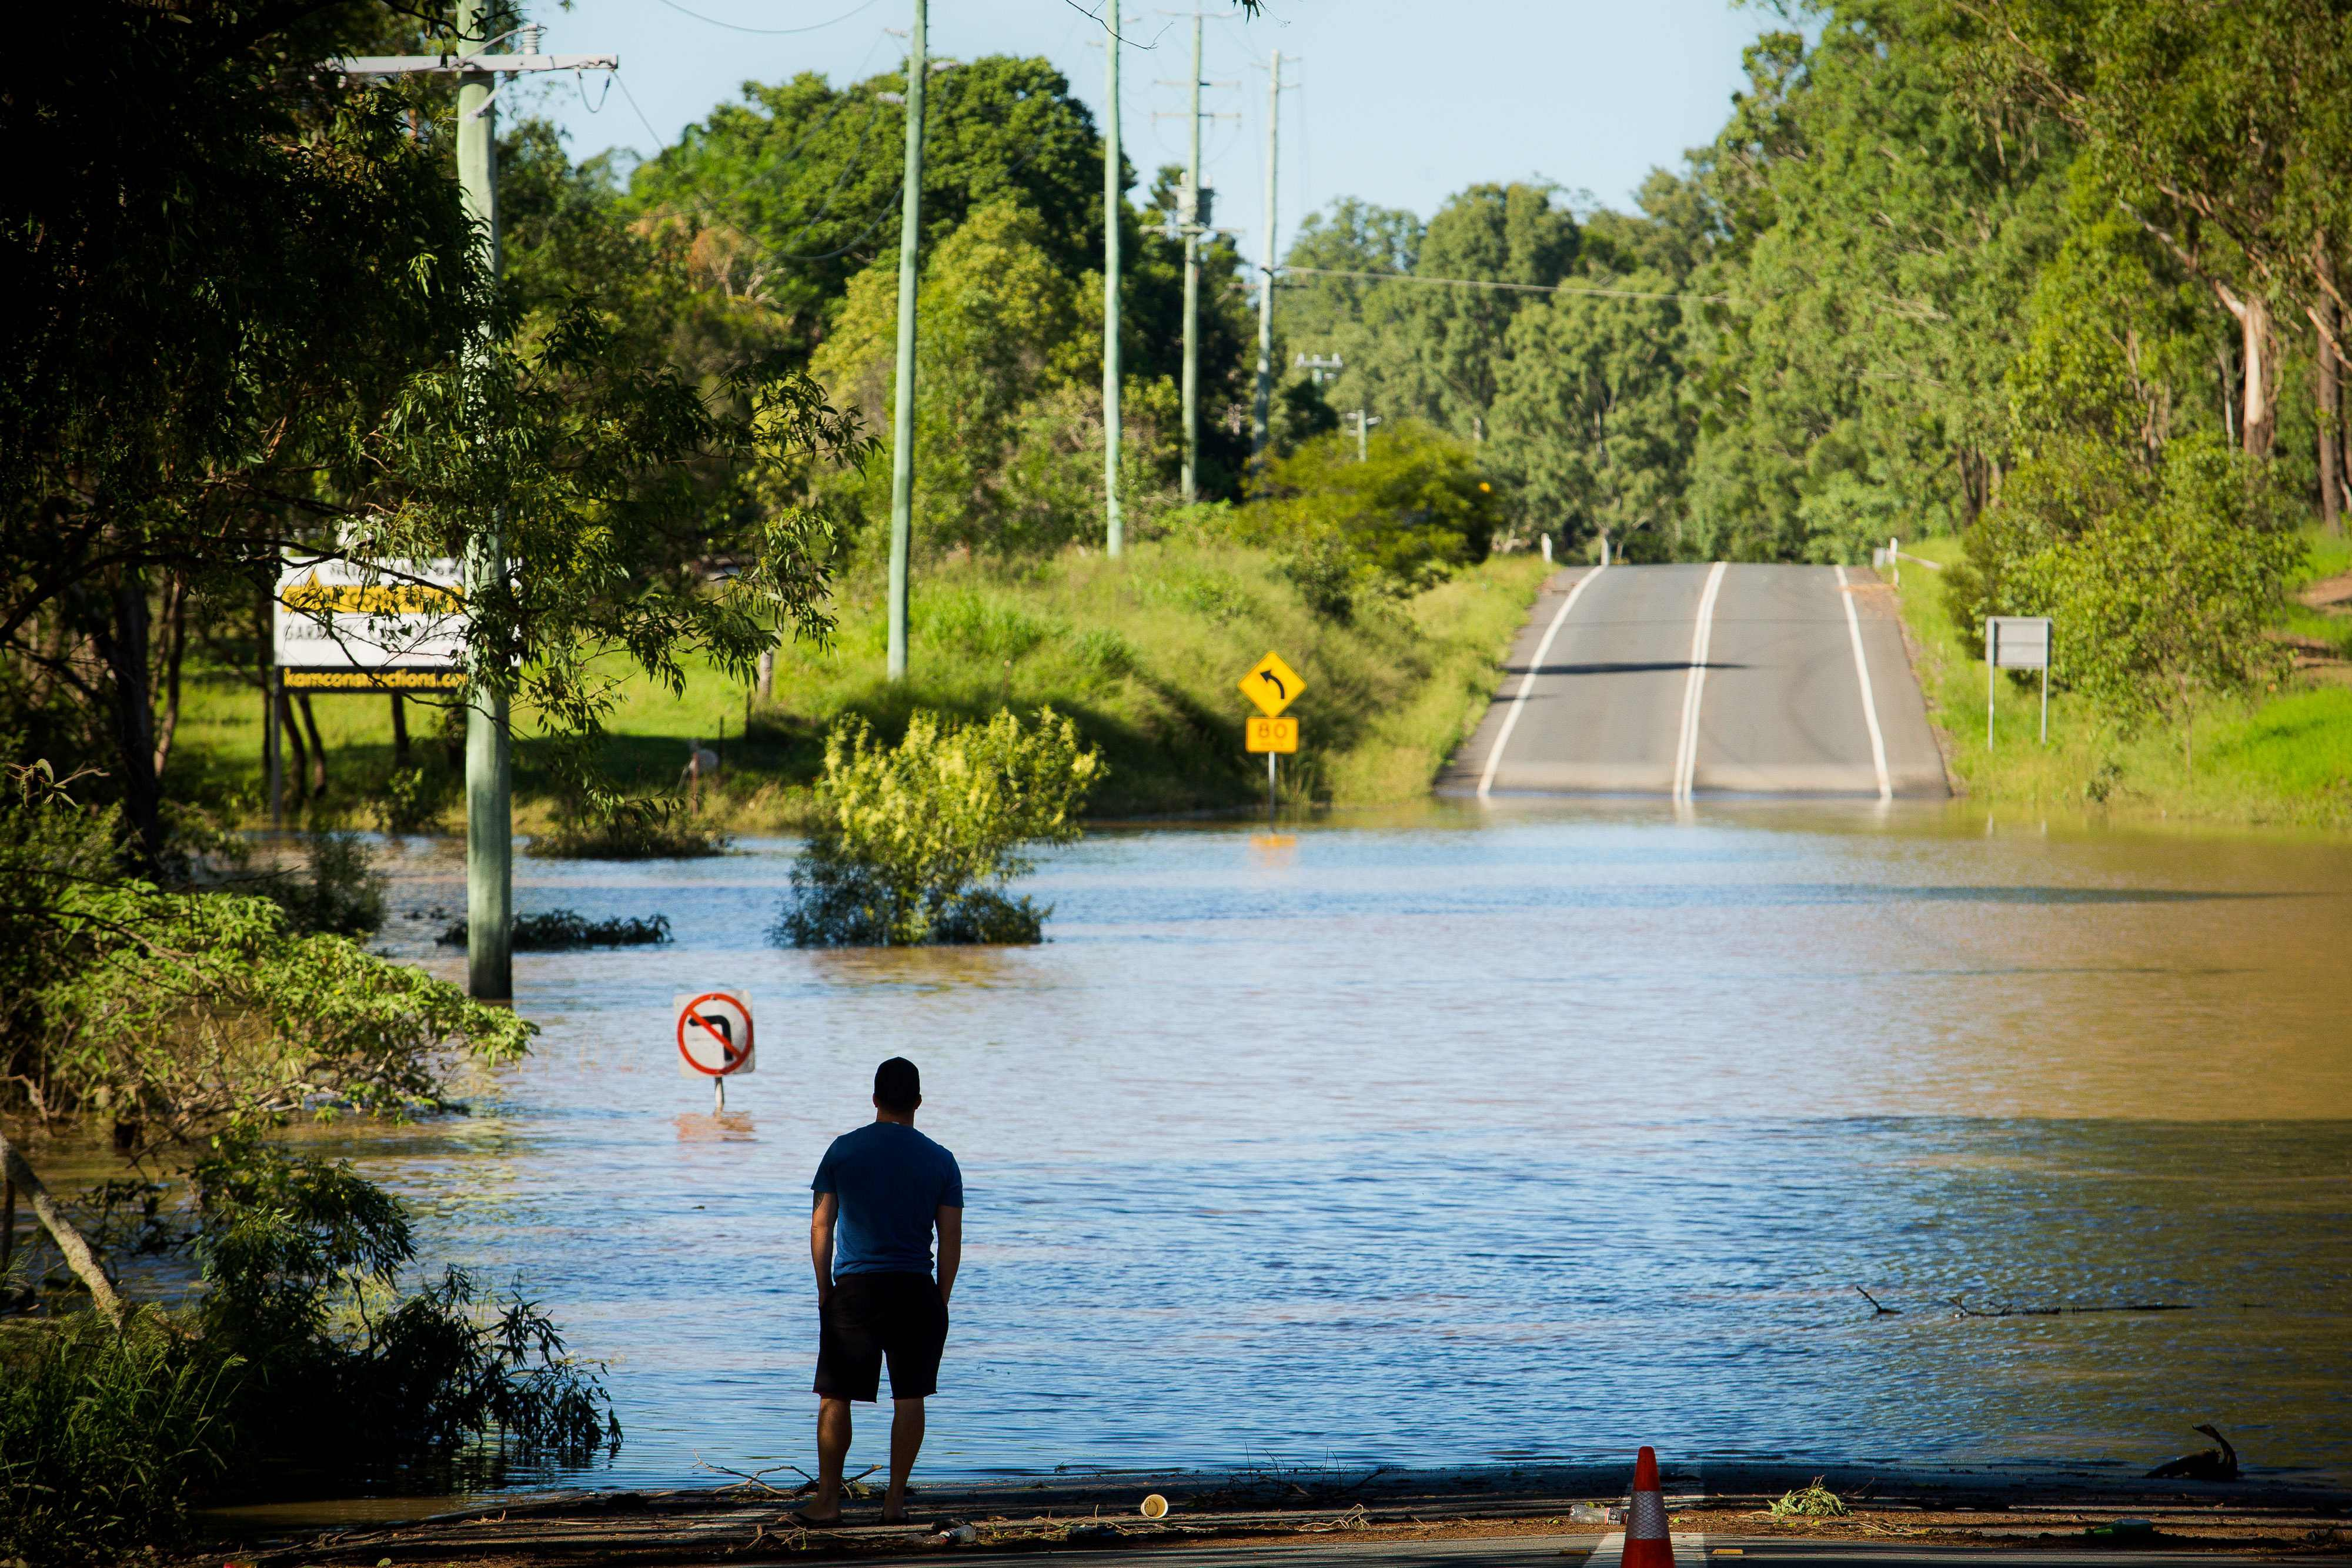 TOPSHOT - A resident looks at a road, submerged under floodwaters caused by Cyclone Debbie, in North MacLean, Brisbane on April 1, 2017. Flooded rivers were still rising on April 1 in two Australian states with two women dead and four people missing after torrential rains in the wake of a powerful tropical cyclone. / AFP PHOTO / Patrick HAMILTON / TT / kod 444